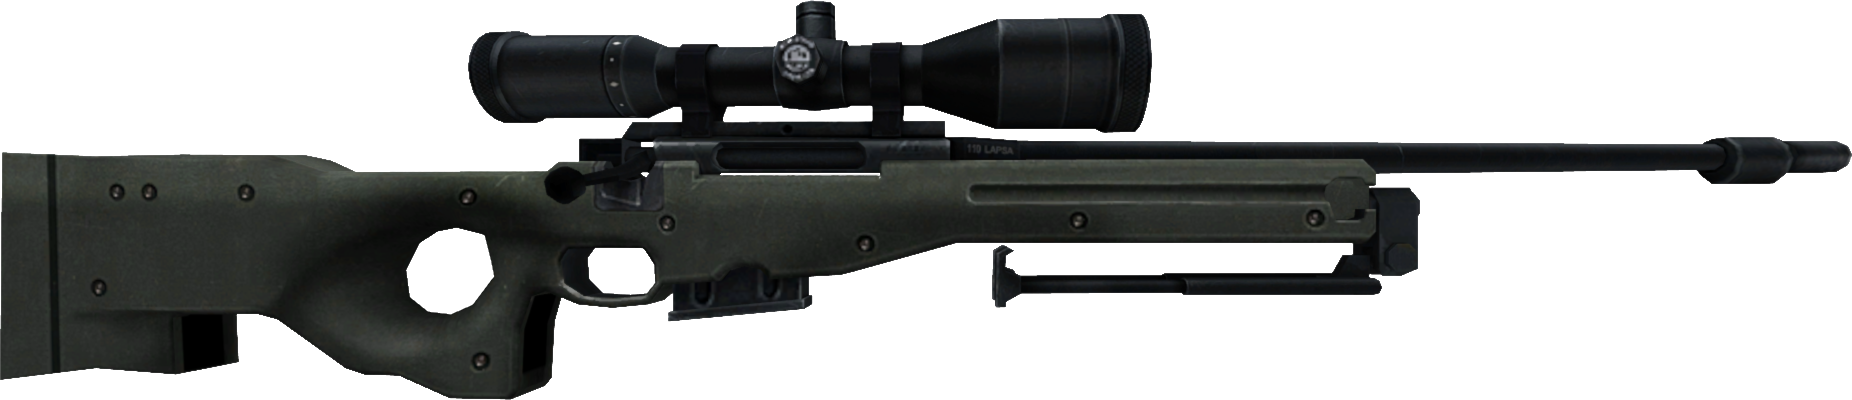 awp weapon png